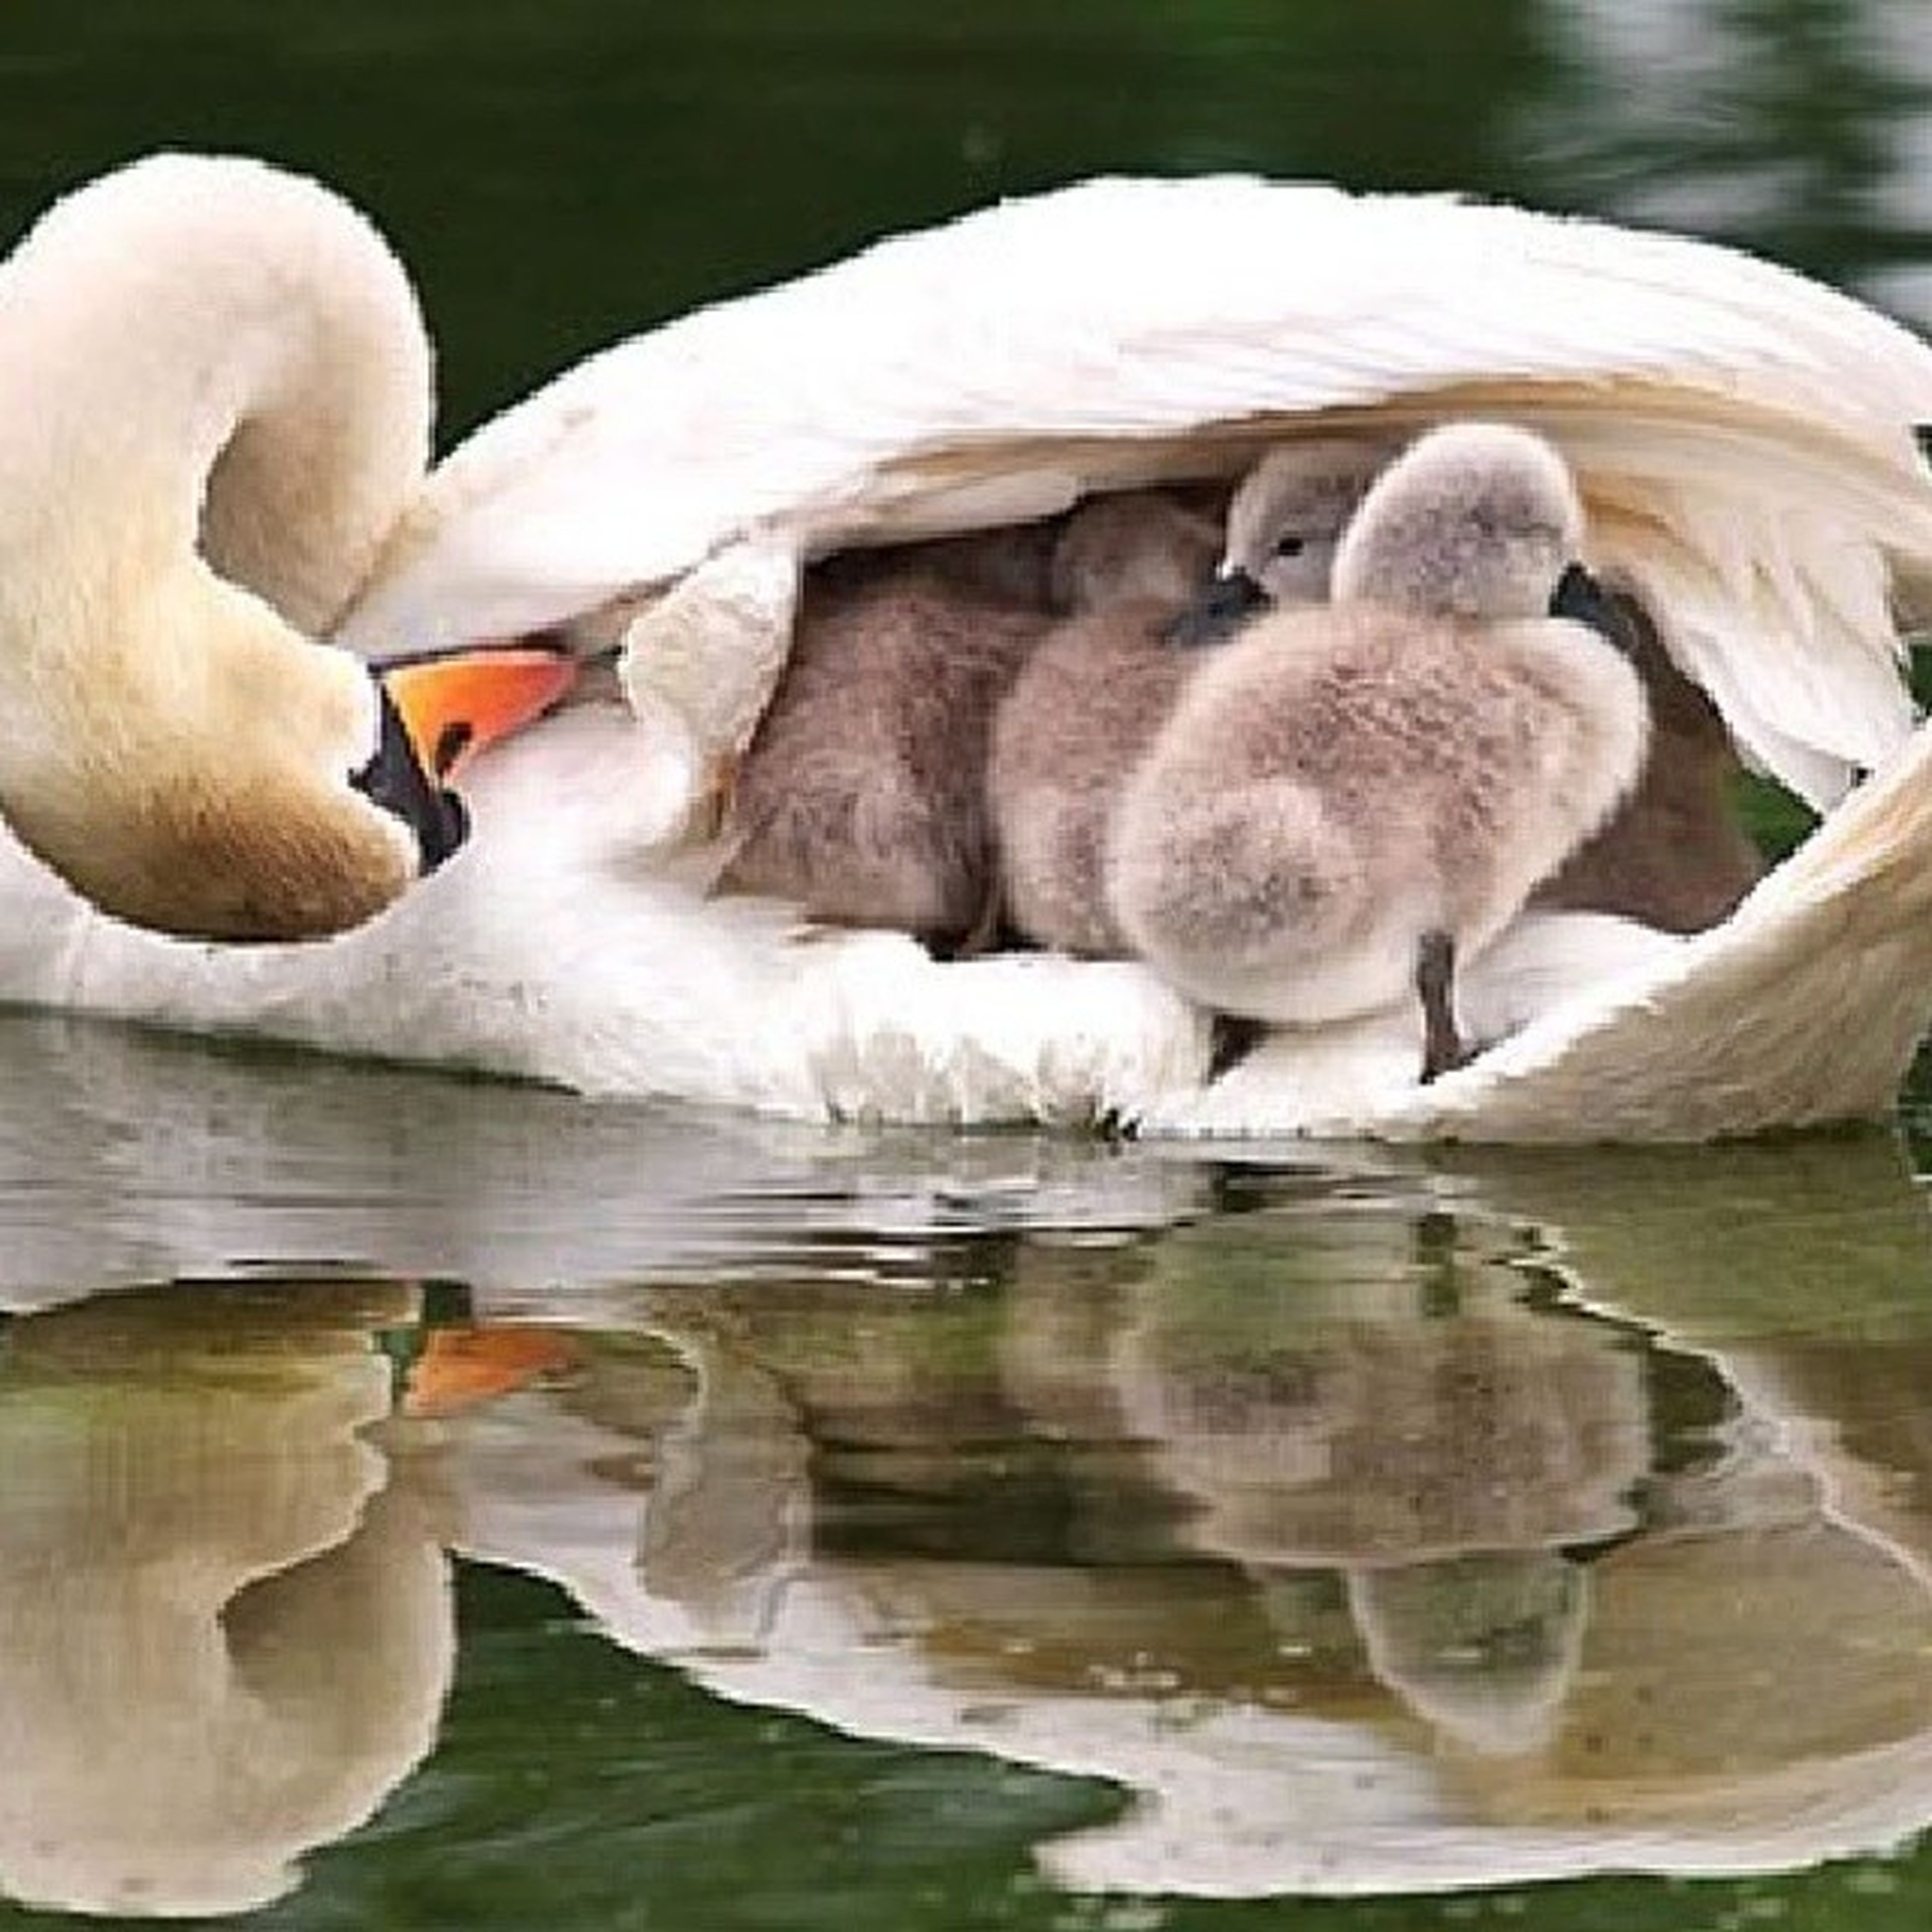 animal themes, bird, swan, lake, animals in the wild, water, wildlife, swimming, white color, beak, water bird, reflection, nature, waterfront, togetherness, animal family, duck, floating on water, rippled